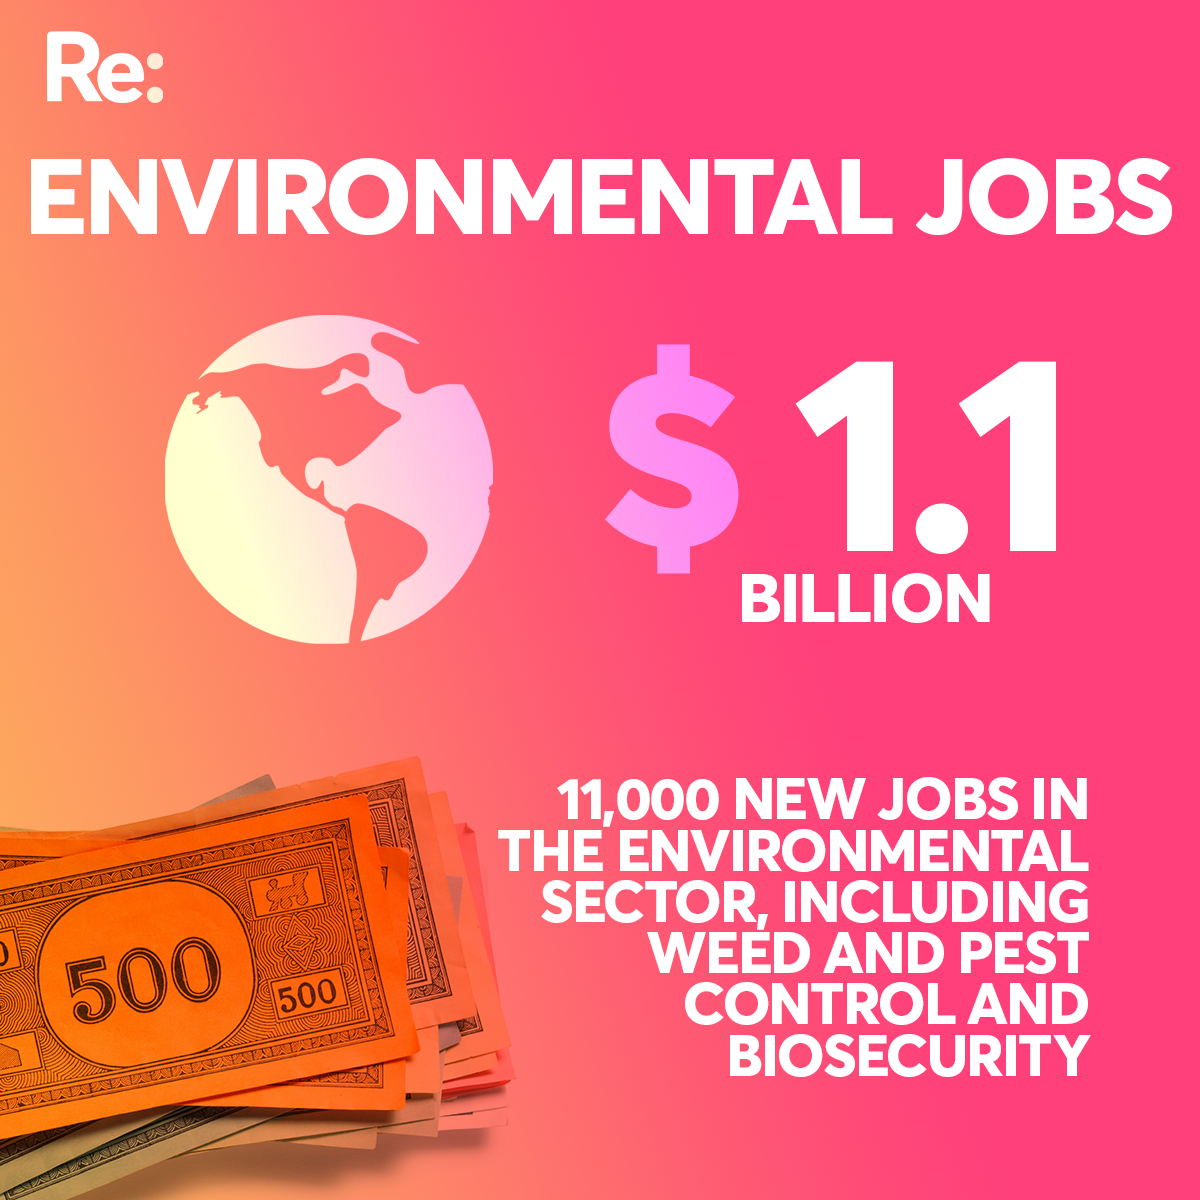 9 2020 BUDGET 11 CLIMATE ENVIRON JOBS